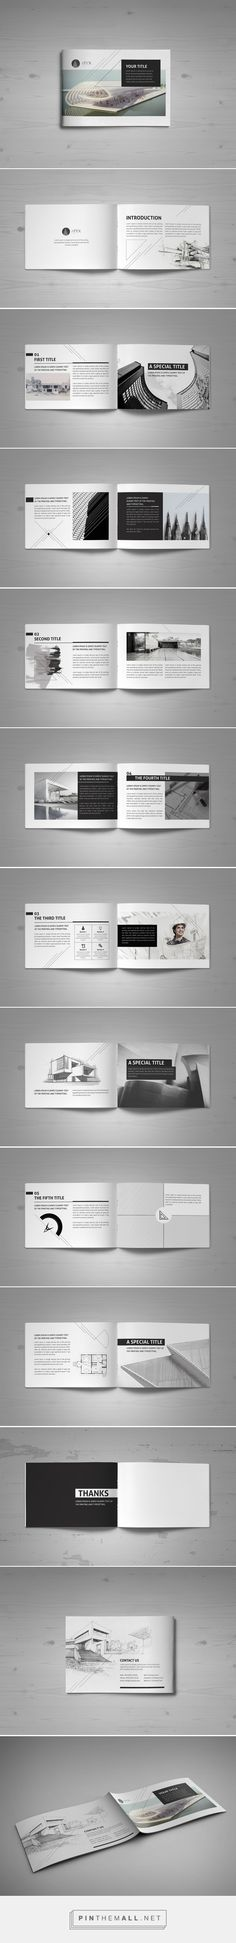 Minimal Modern Black & White Architecture Brochure by Mohammed Al Gharabli: - Graphic Files Layout Design, Design De Configuration, Design Retro, Graphisches Design, Print Layout, Graphic Design, Portfolio D'architecture, Mise En Page Portfolio, Branding Portfolio